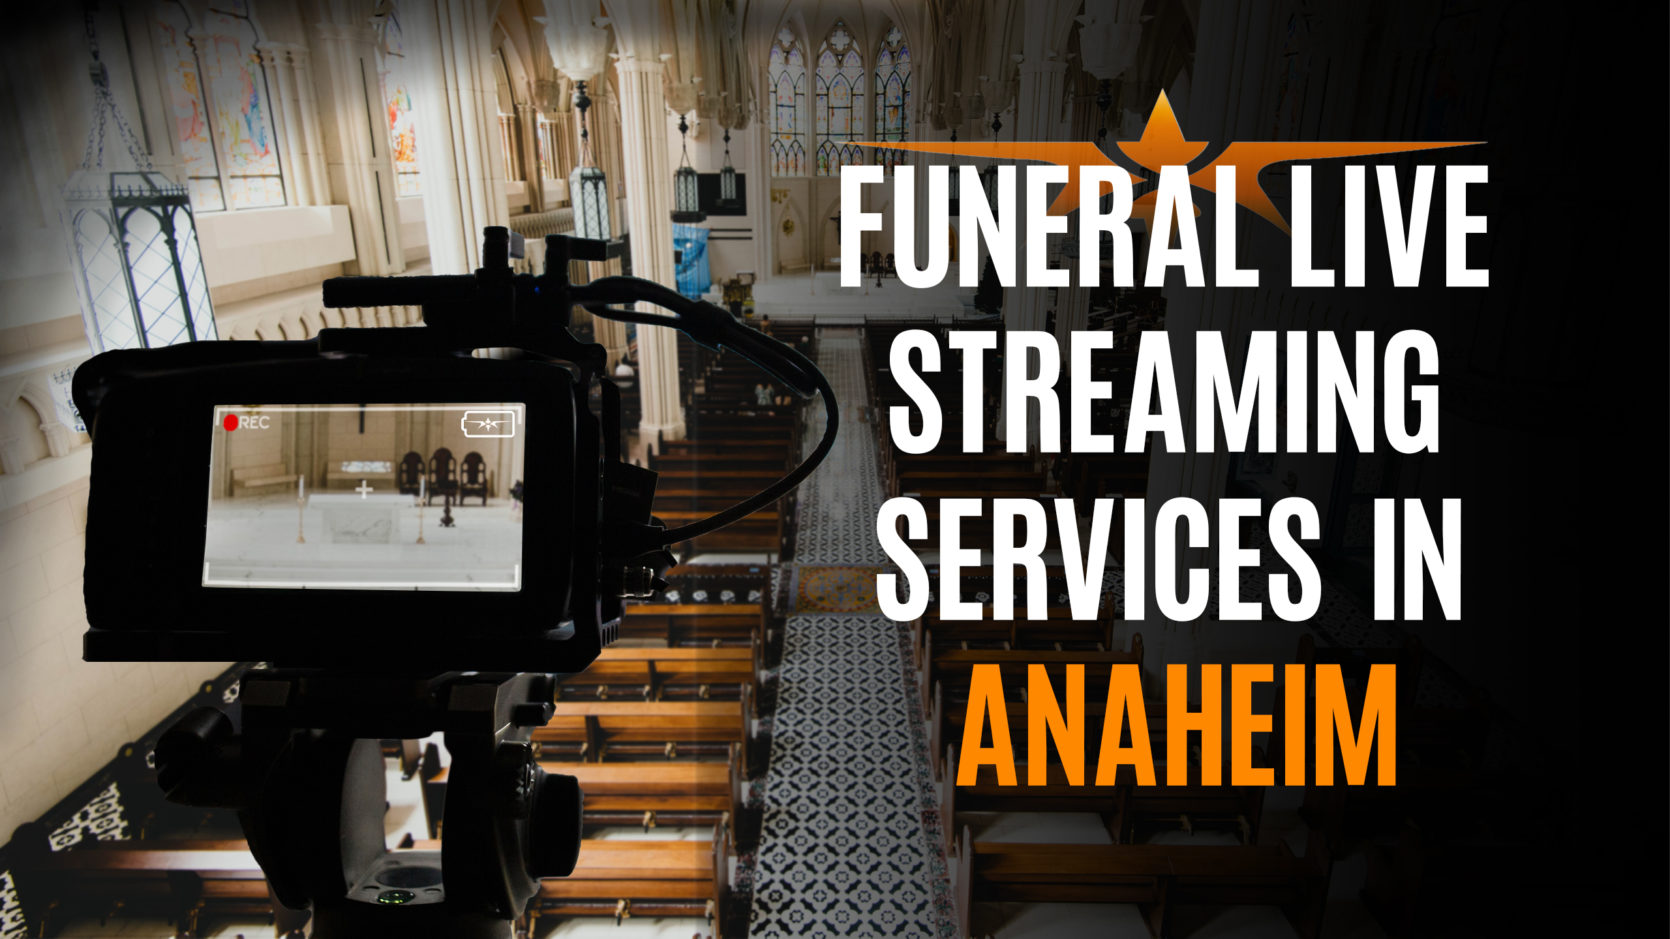 Funeral Live Streaming Services in Anaheim